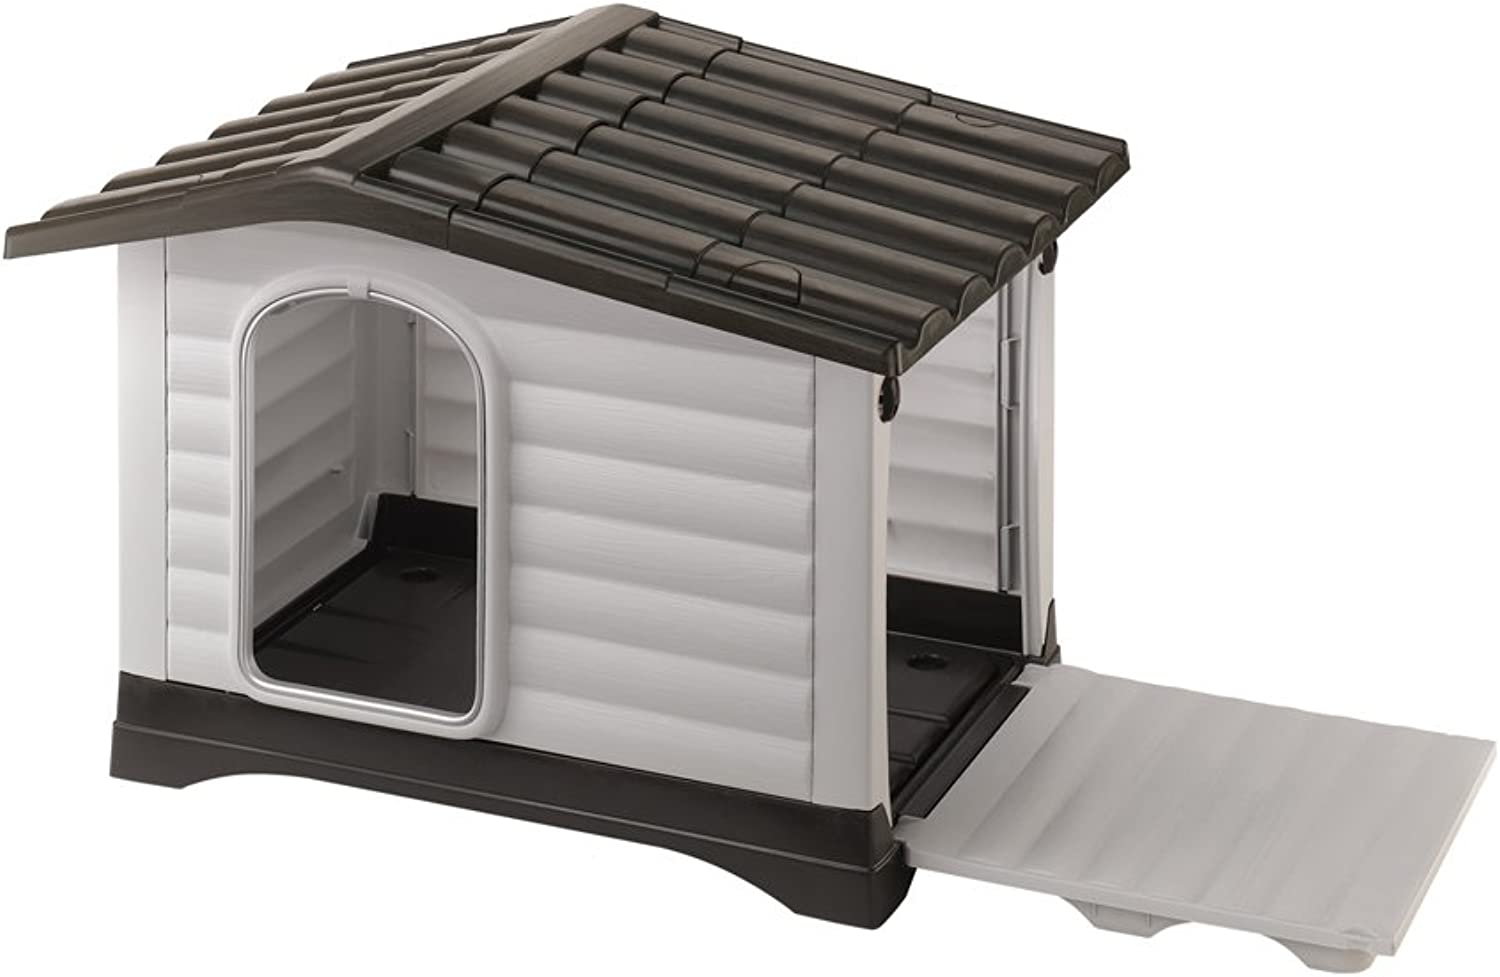 Ferplast Dog Kennel, 28.74 x 23.23 x 20.87